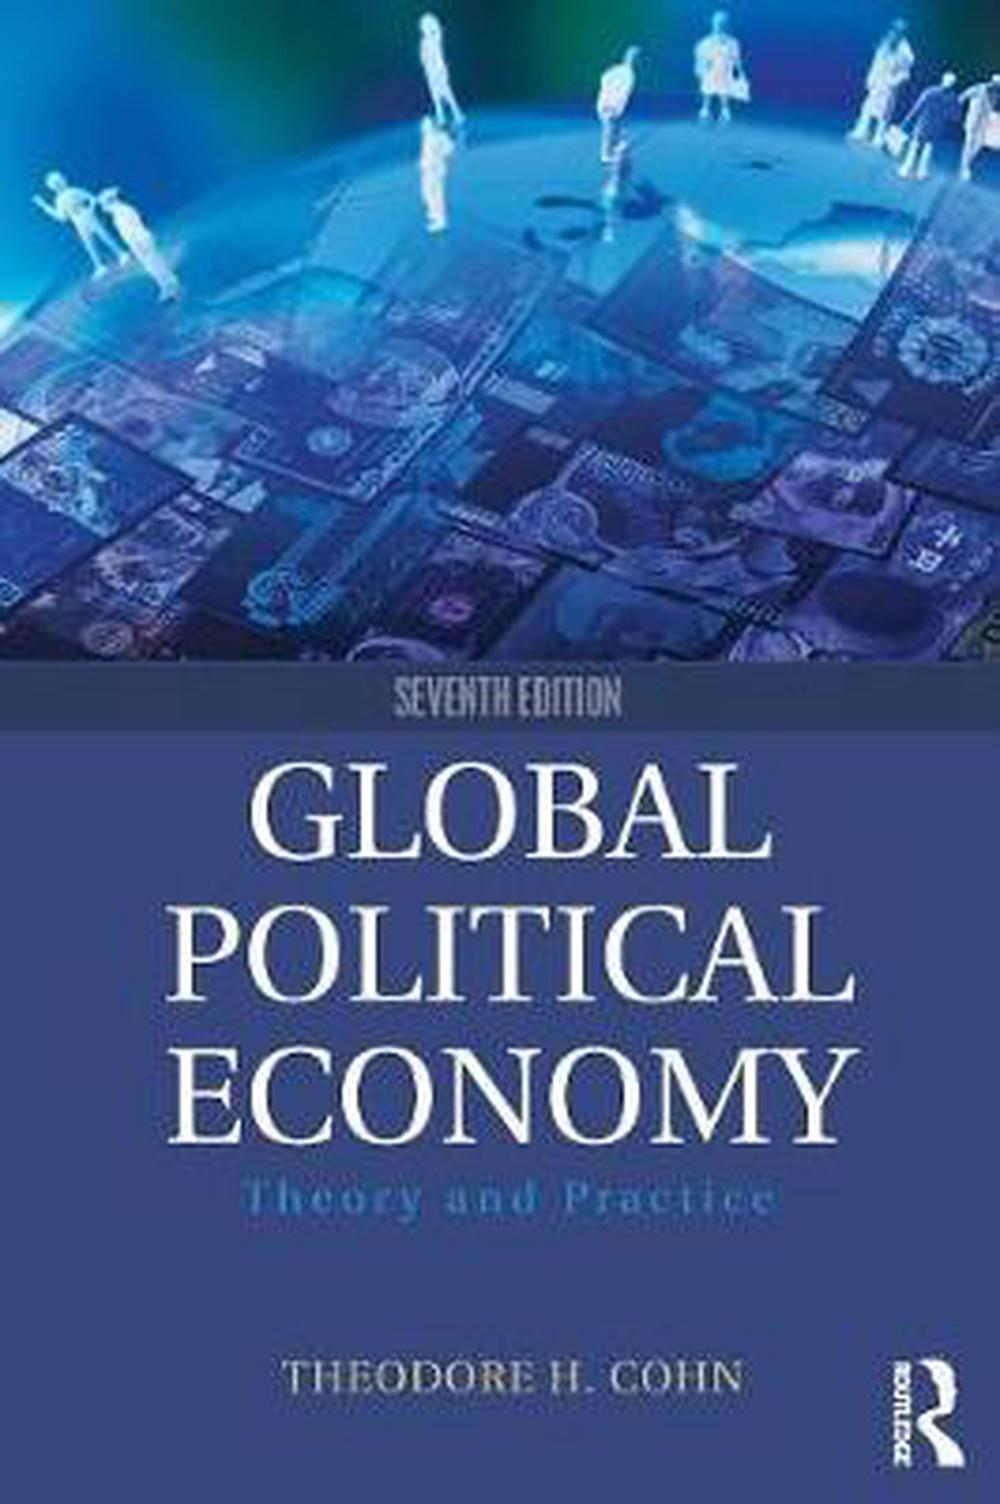 Global Political Economy: Theory and Practice, 7th Edition